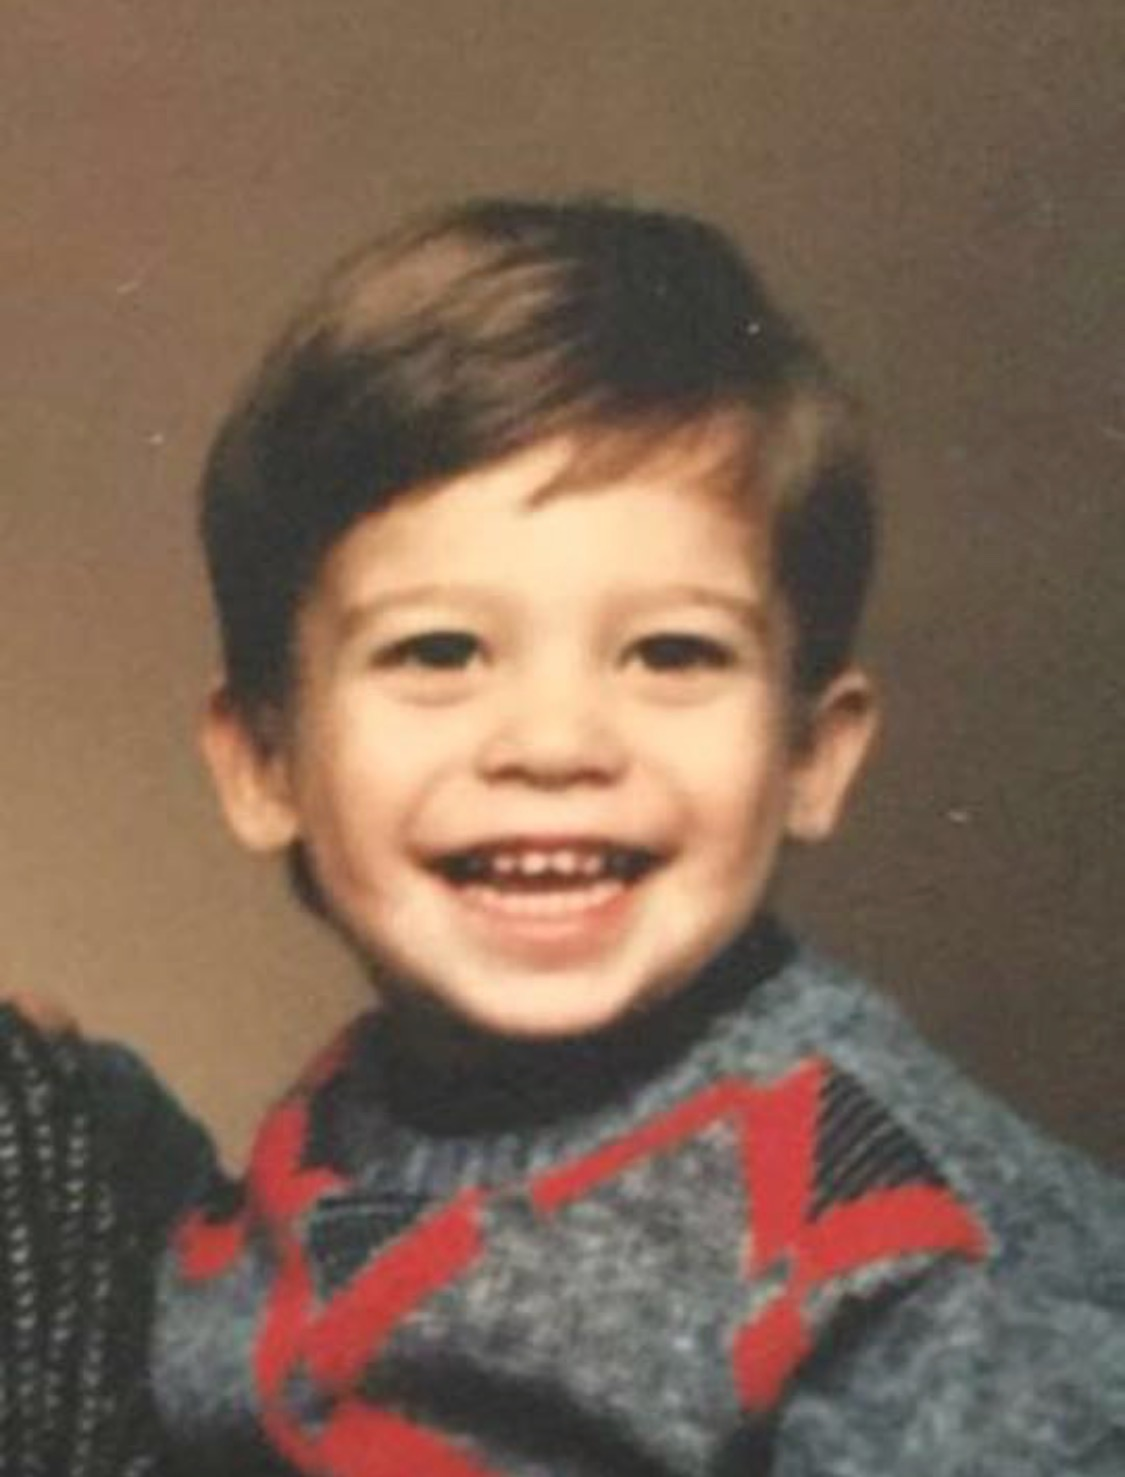 Mike Dewey as a kid, cheesing for the camera in his sweater